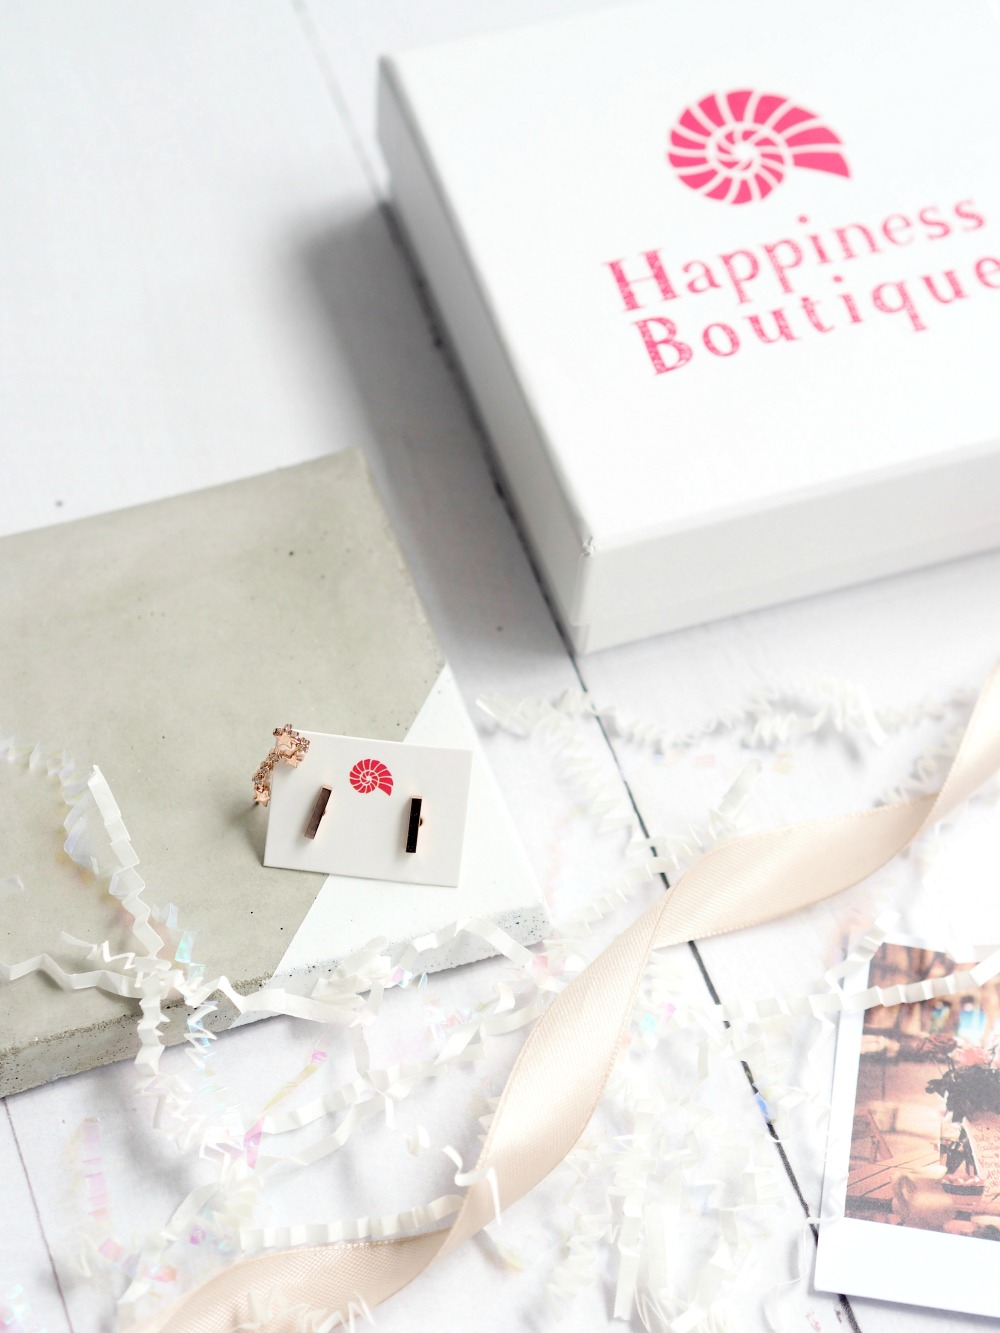 The Happiness Boutique Earrings